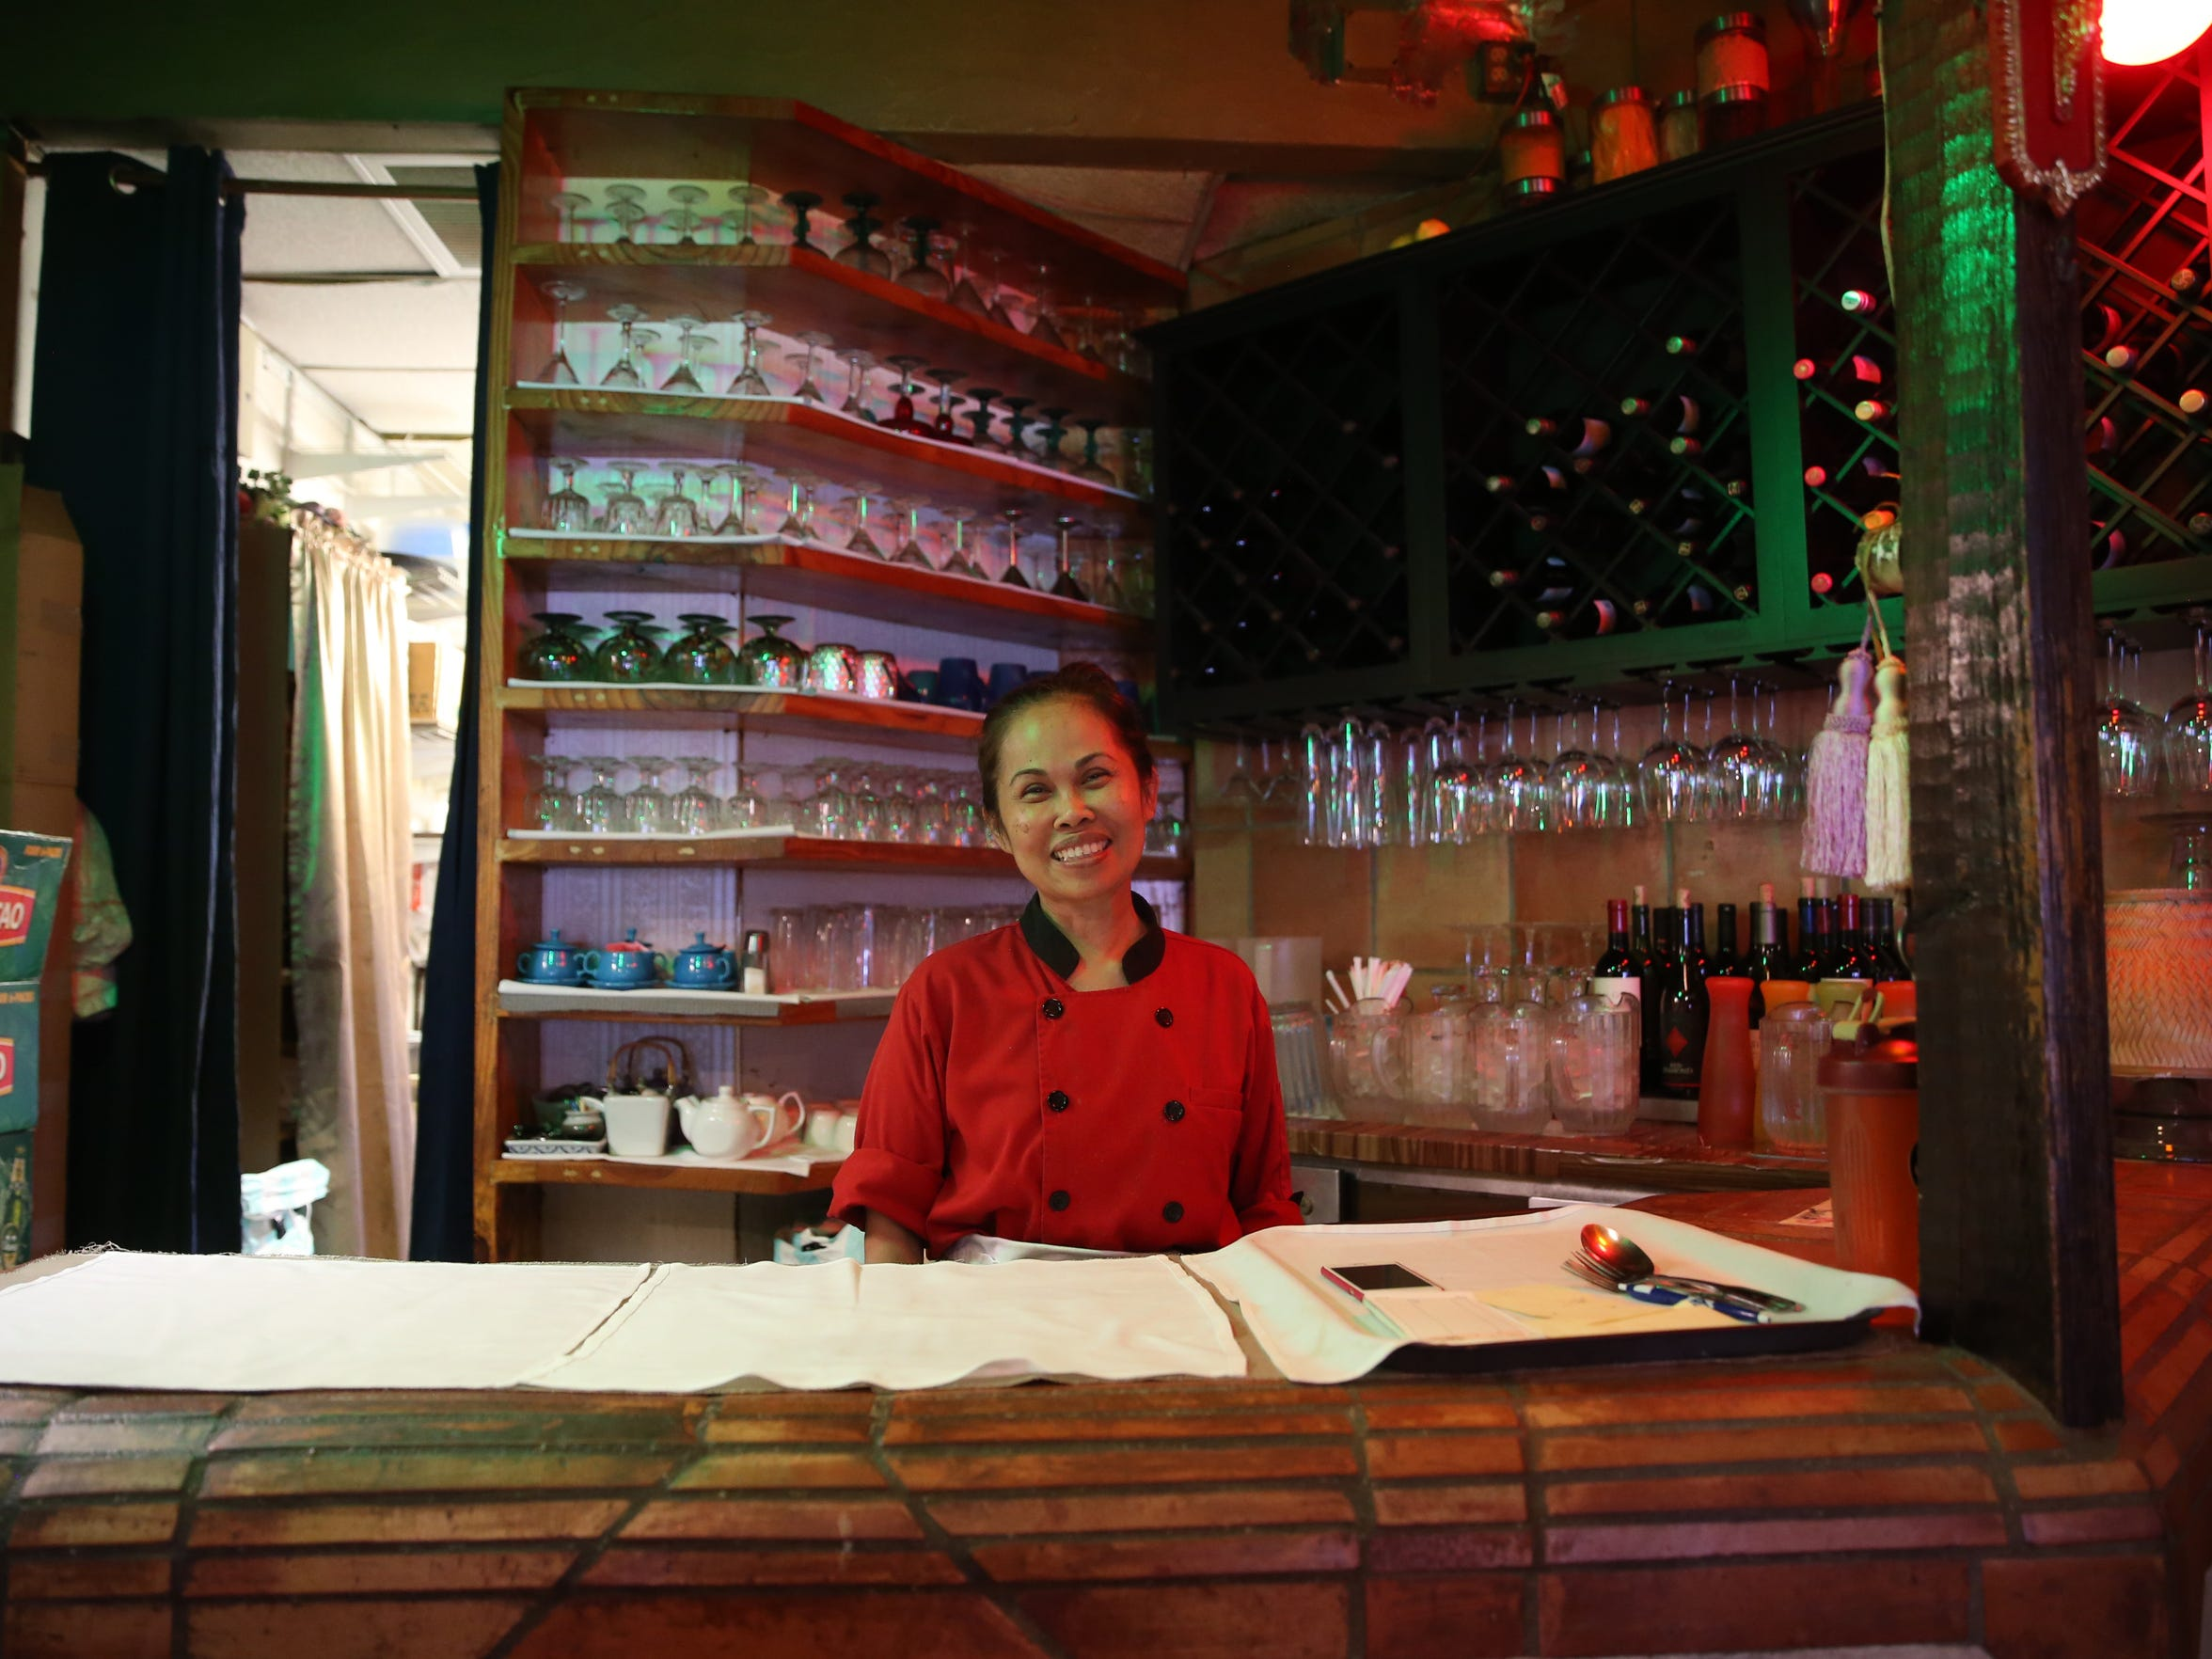 Nipada Mulsing, or Chef Donna as she is known to her customers, works seven days a week at her business Reangthai Restaurant on the city's north-east side to bring flavors from her home country of Thailand to Tallahassee.